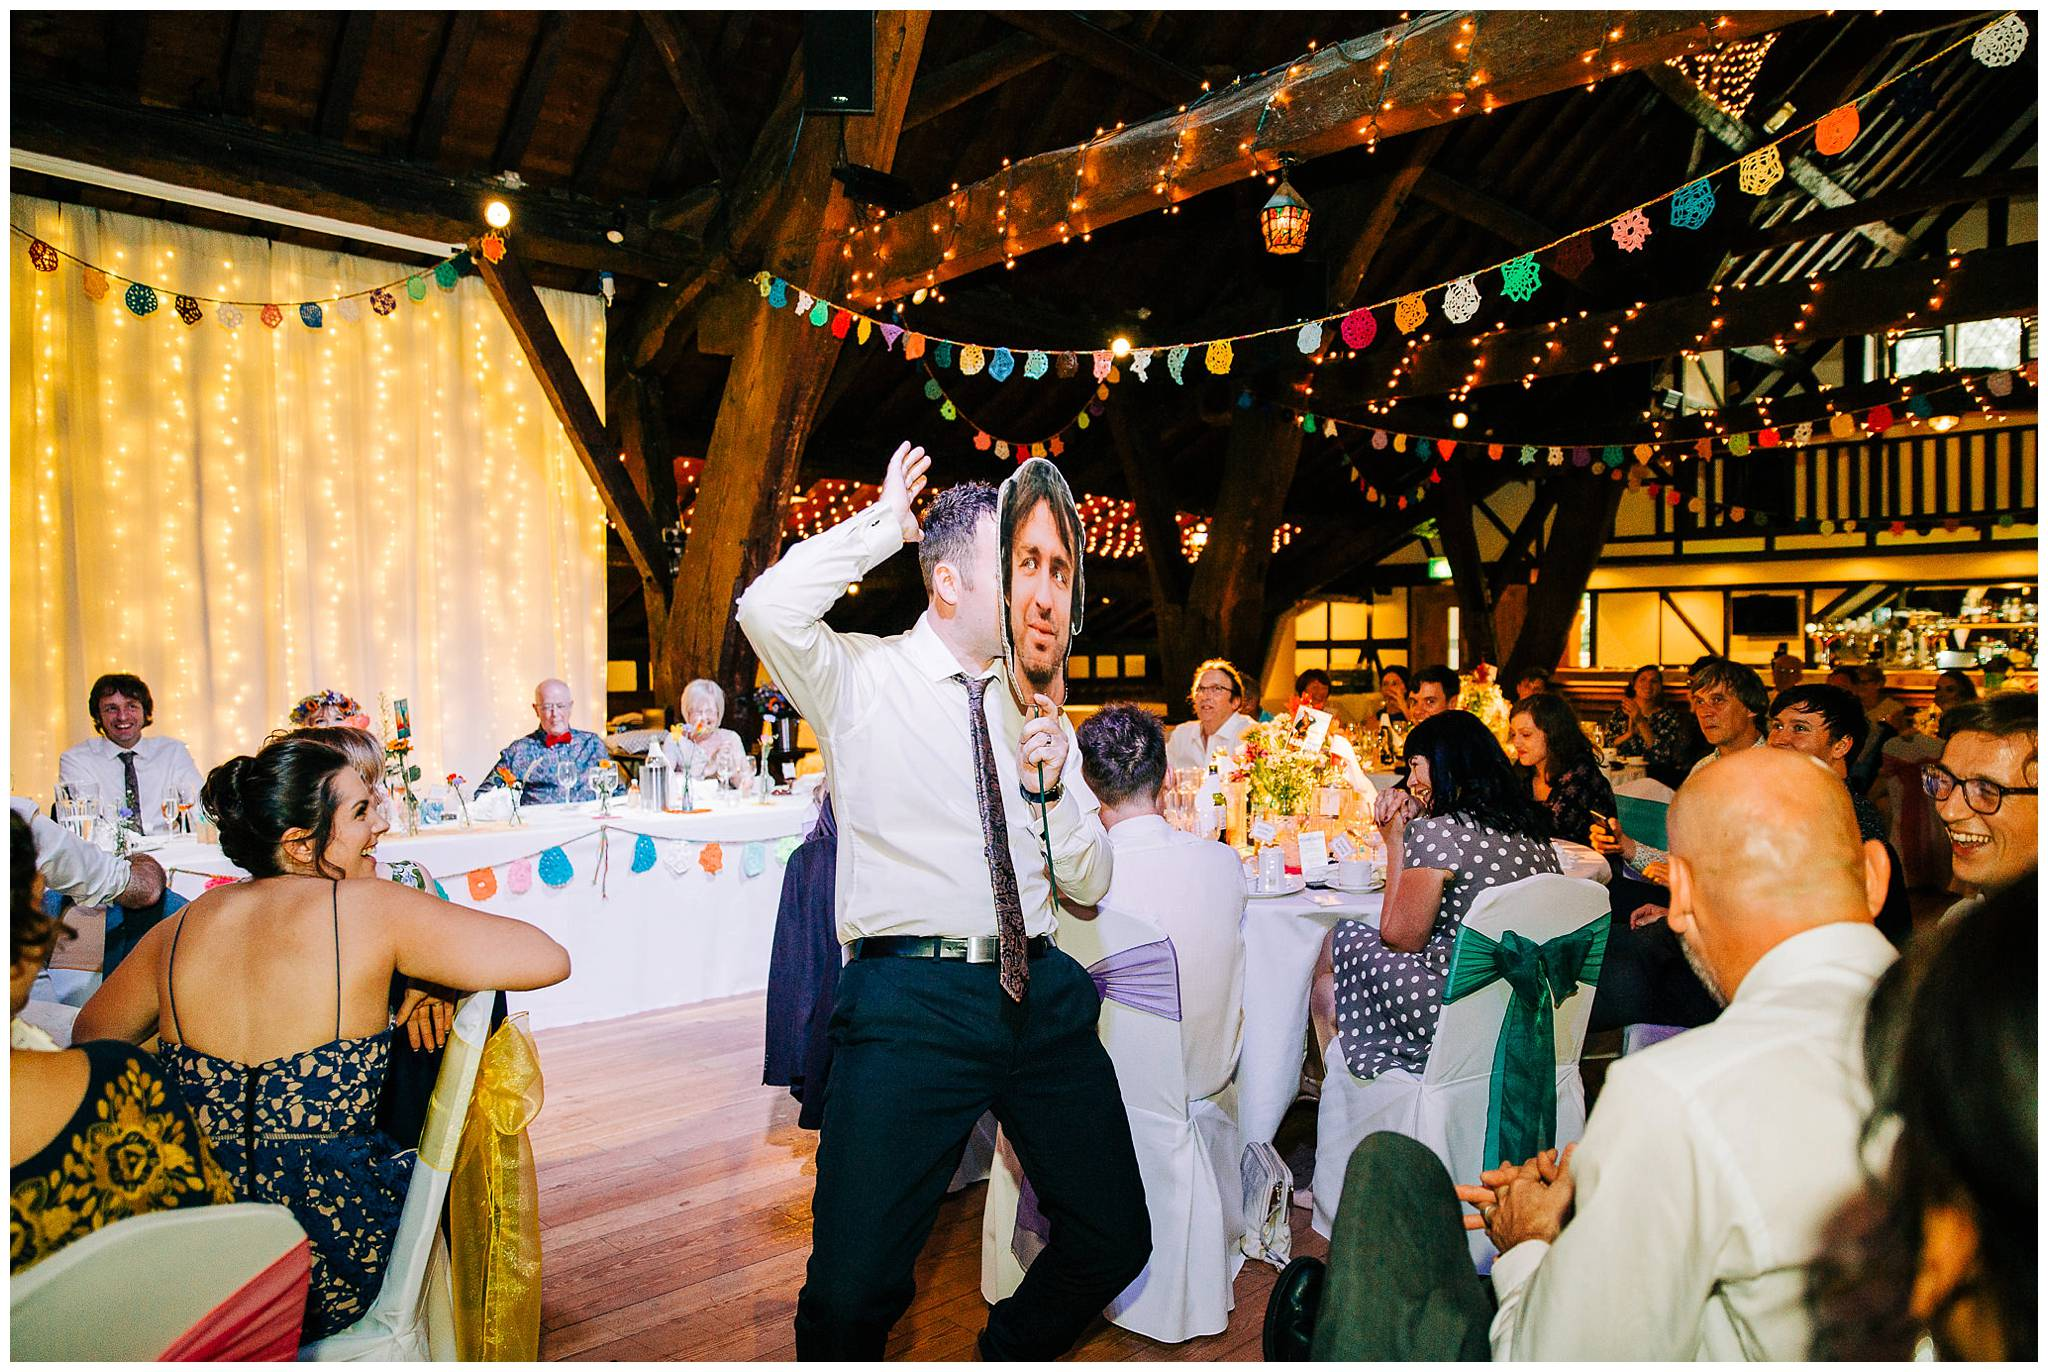 best man wearing cardboard grooms face whilst thrusting hips